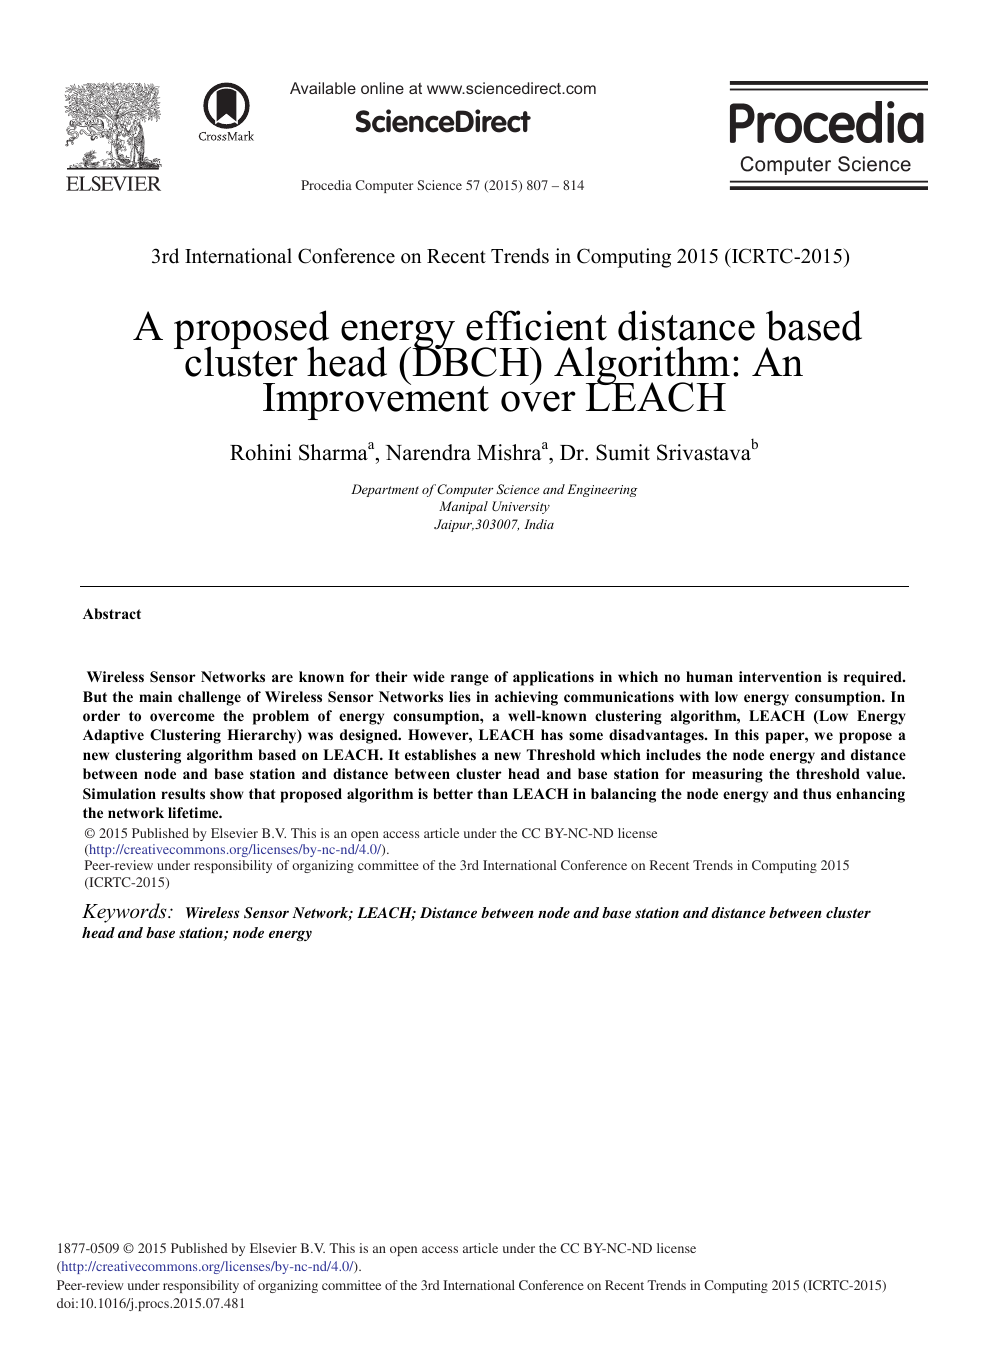 A proposed Energy Efficient Distance Based Cluster Head (DBCH